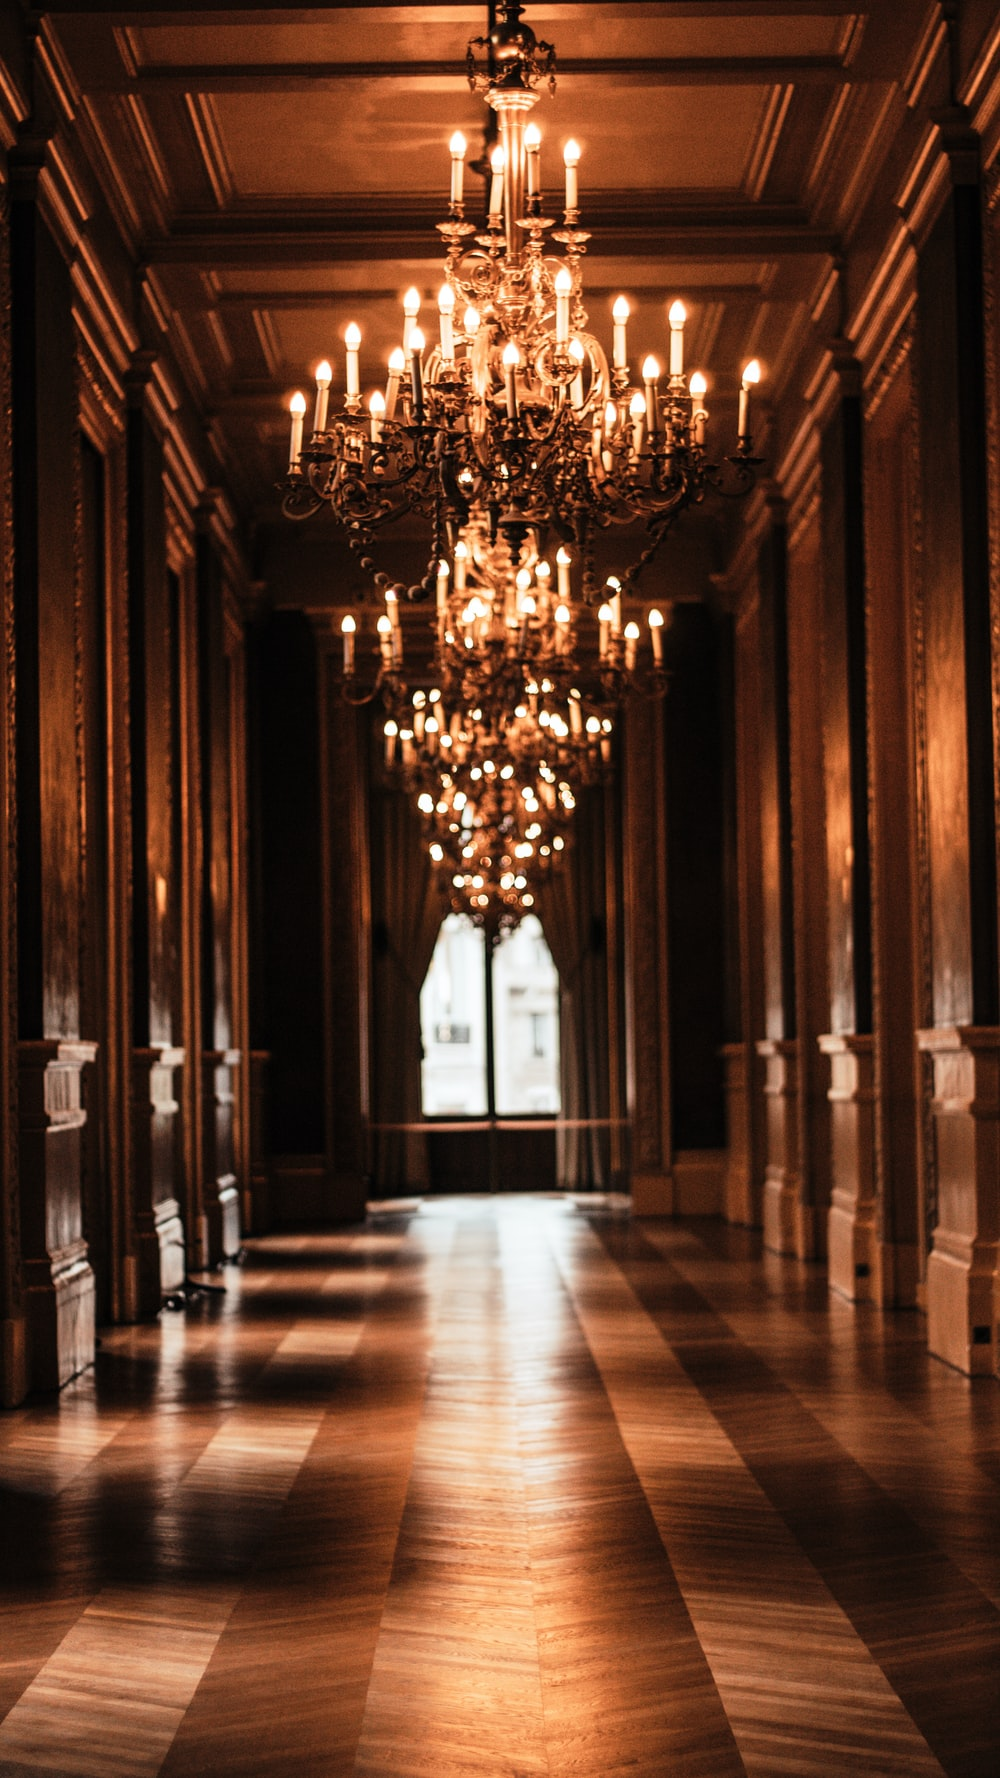 Chandelier Lamp Corridor And Paris Hd Photo By Saad